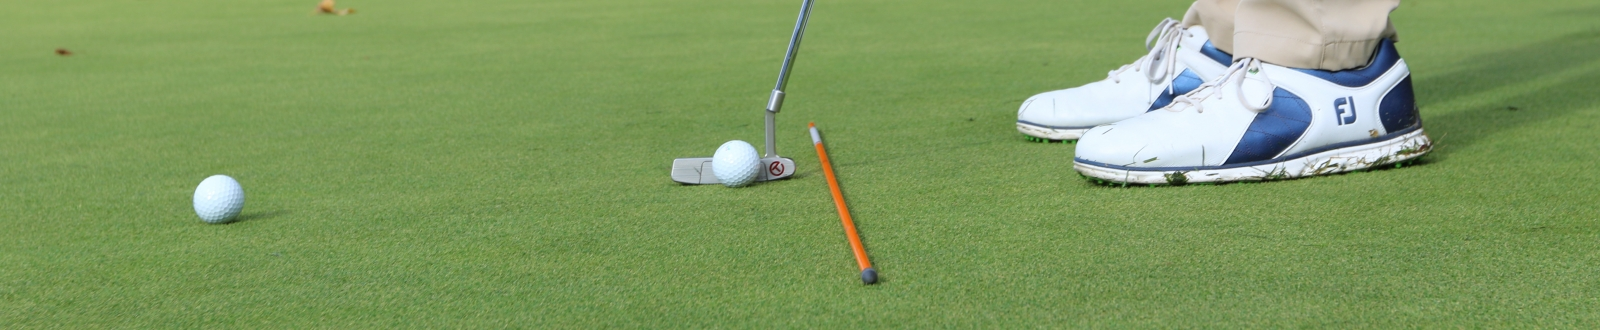 Golfer practicing putting